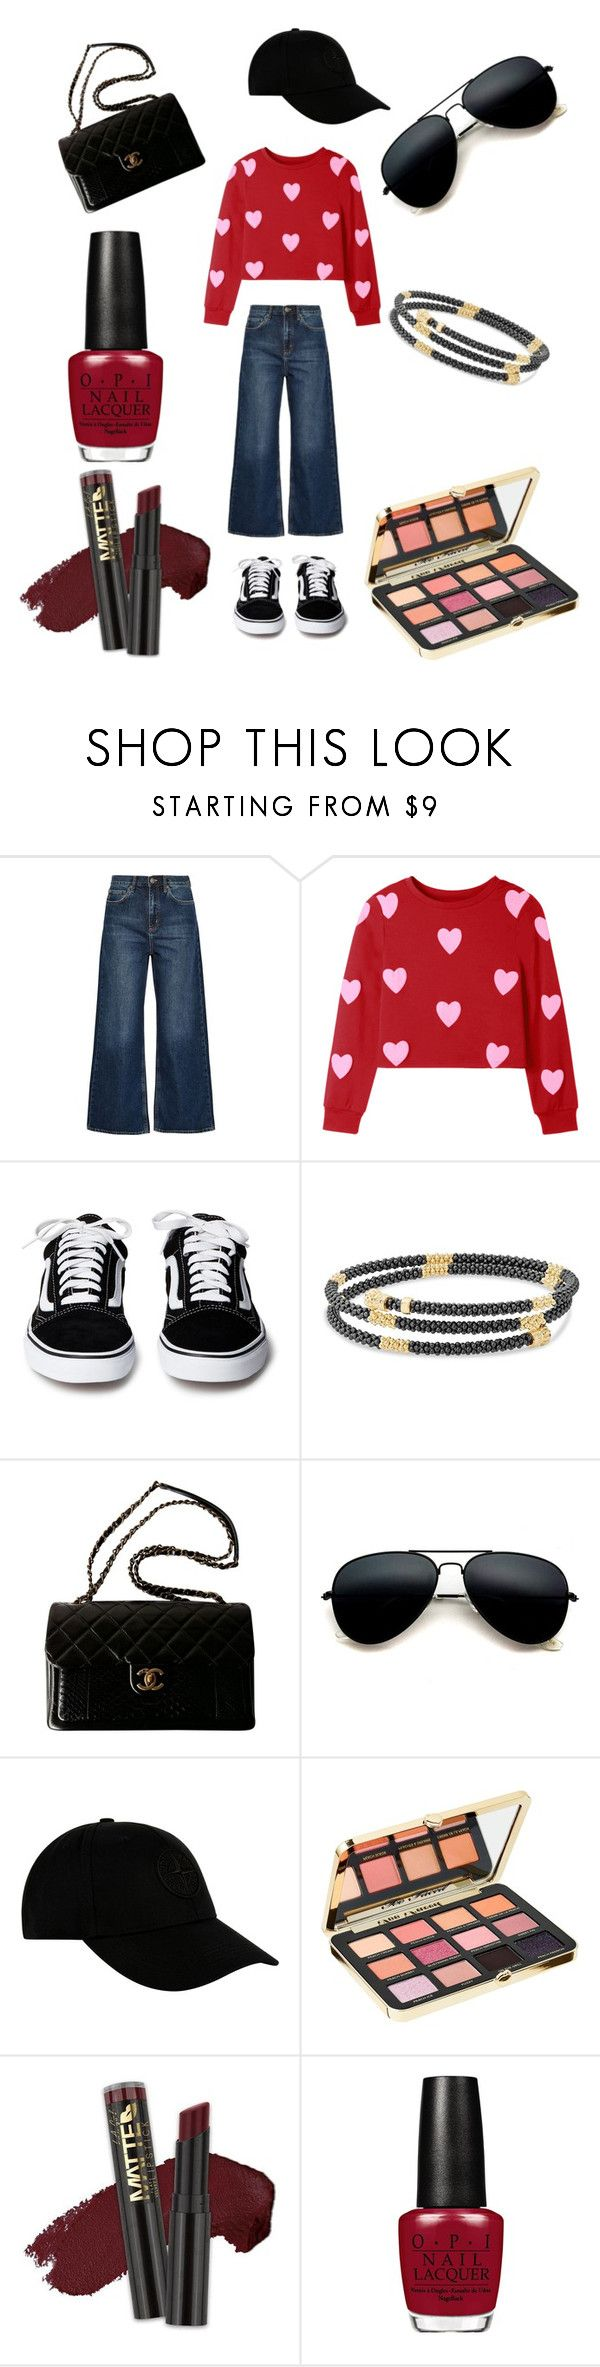 """wide - jeans look💗💖"" by sugerplum0727 ❤ liked on Polyvore featuring M.i.h Jeans, Lagos, Chanel, STONE ISLAND, Too Faced Cosmetics, L.A. Girl, denimtrend and widelegjeans"